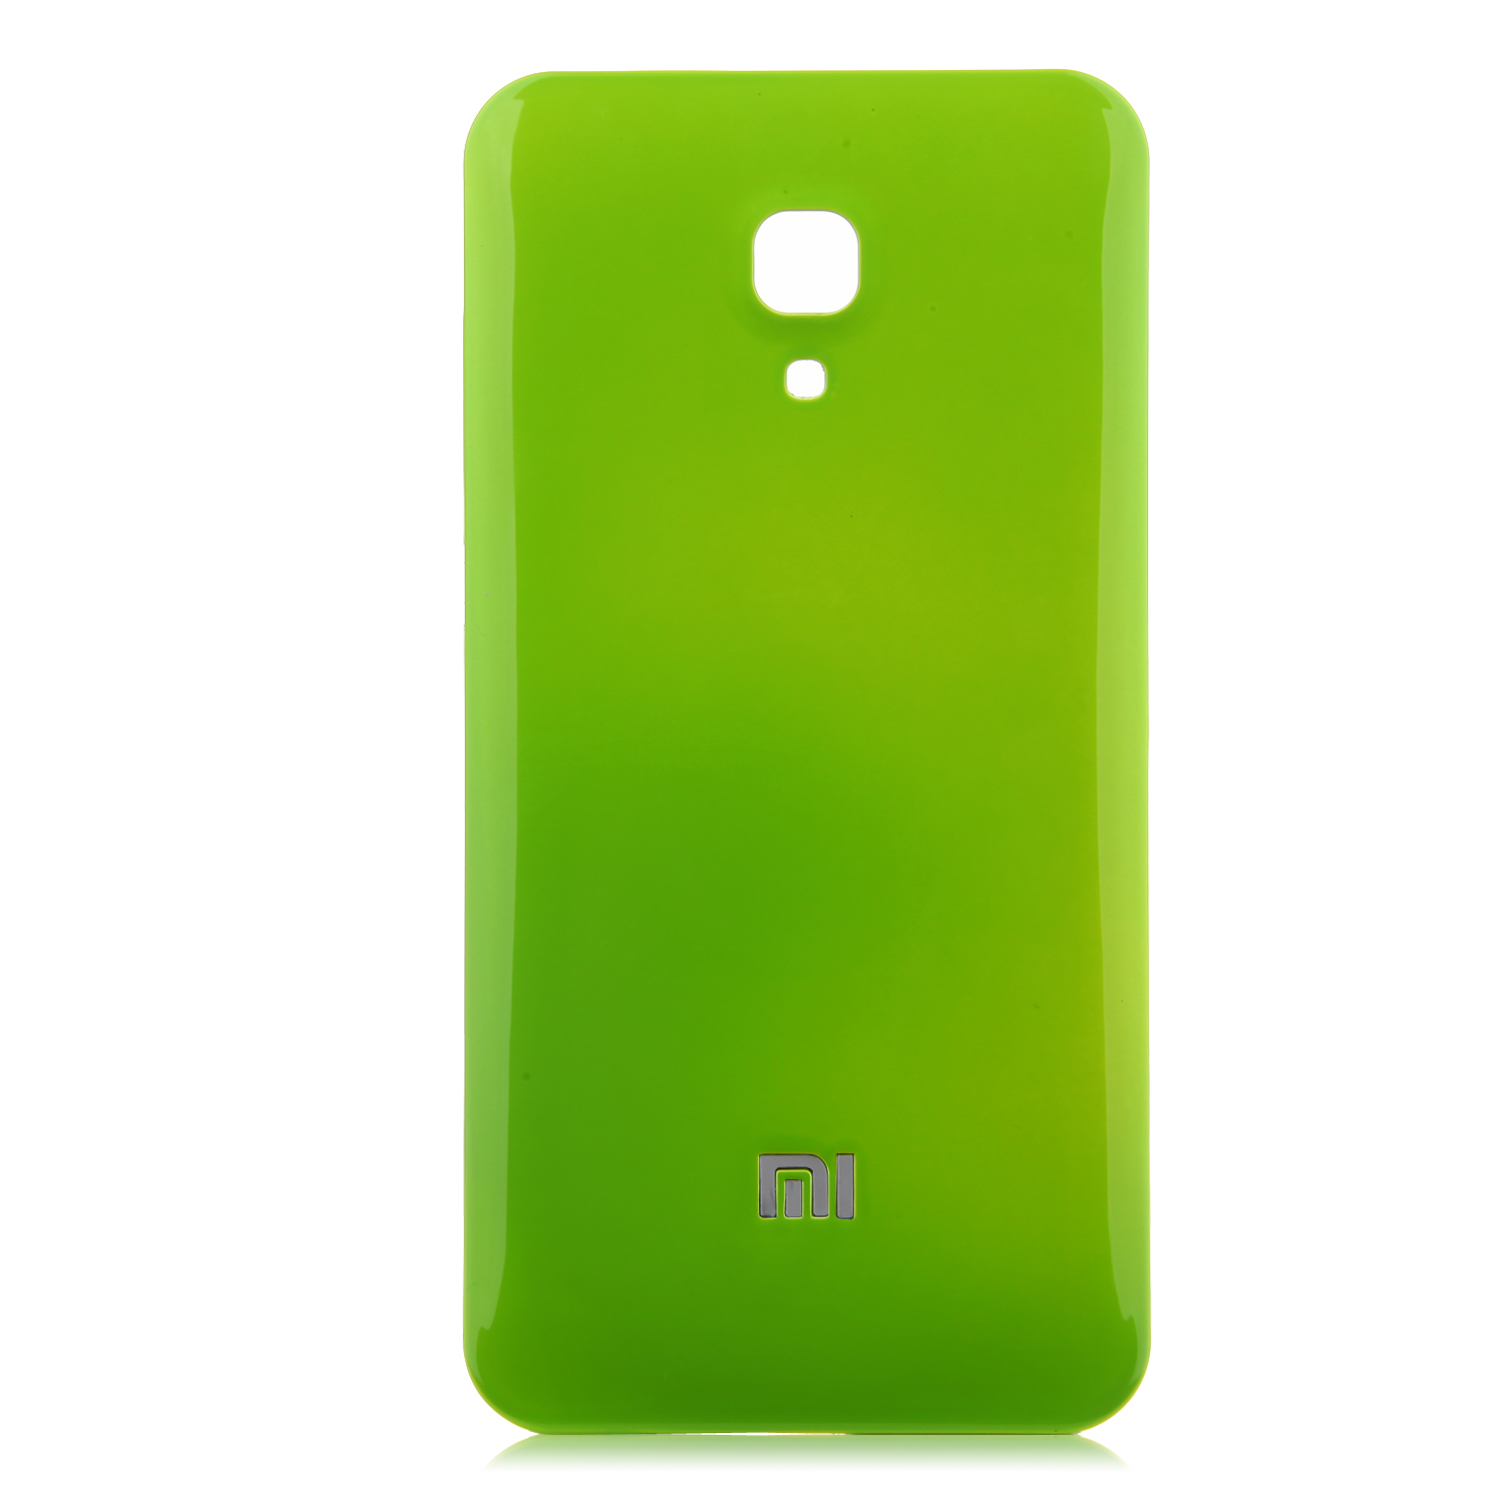 Replacement Battery Cover Back Case for XIAOMI 2A Smartphone Green